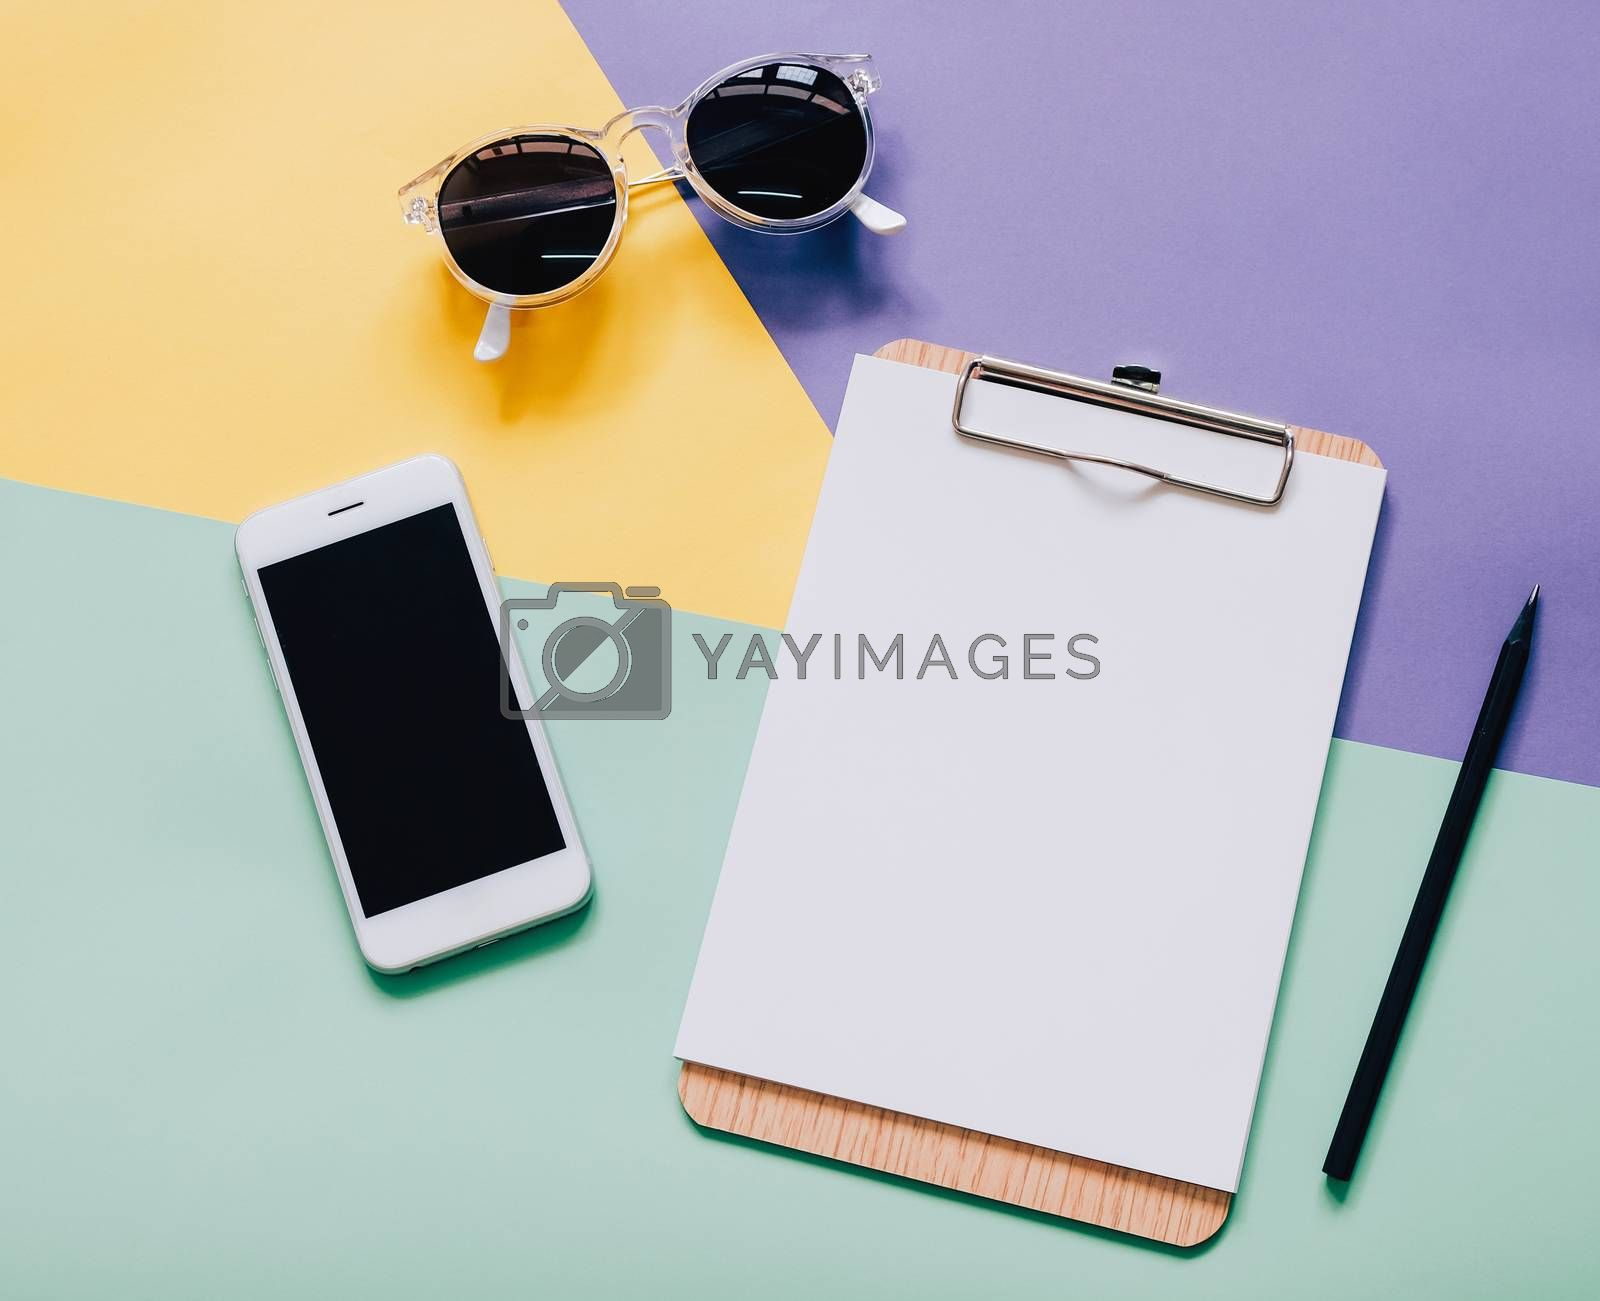 Creative flat lay style workspace desk with smartphone, blank clipboard and sunglasses on modern colorful background